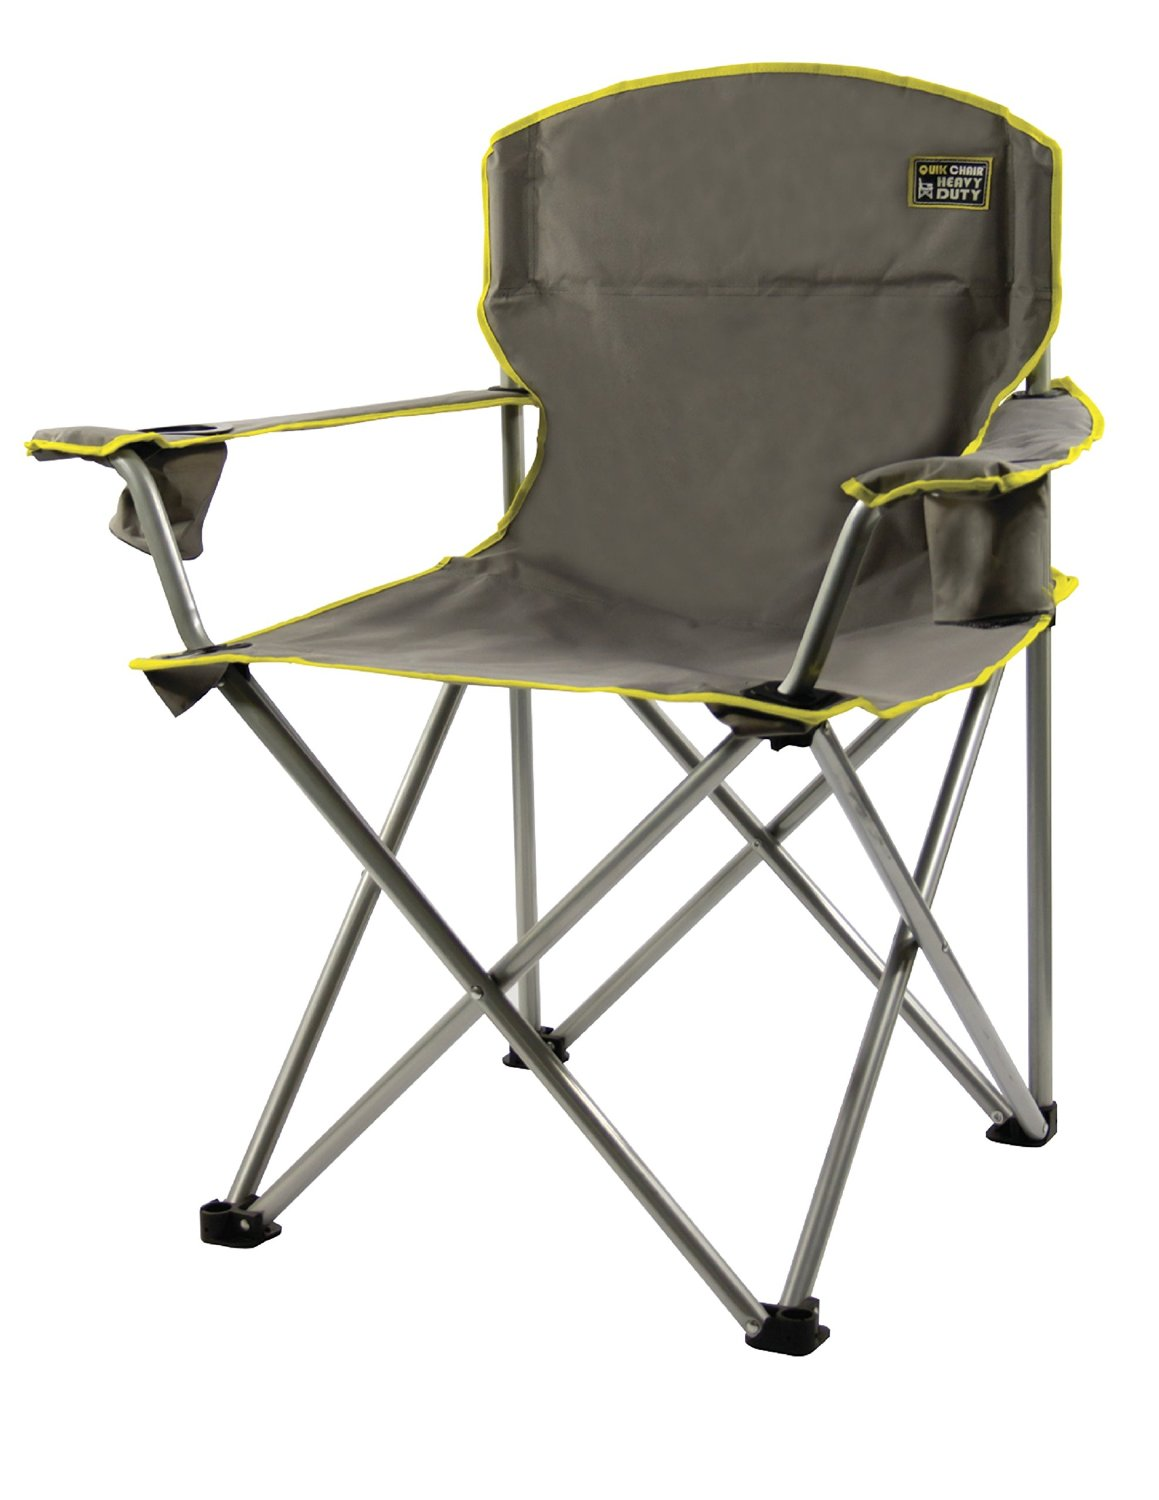 10 Best Ultimately Comfortable Camping Chairs Camping Chairman